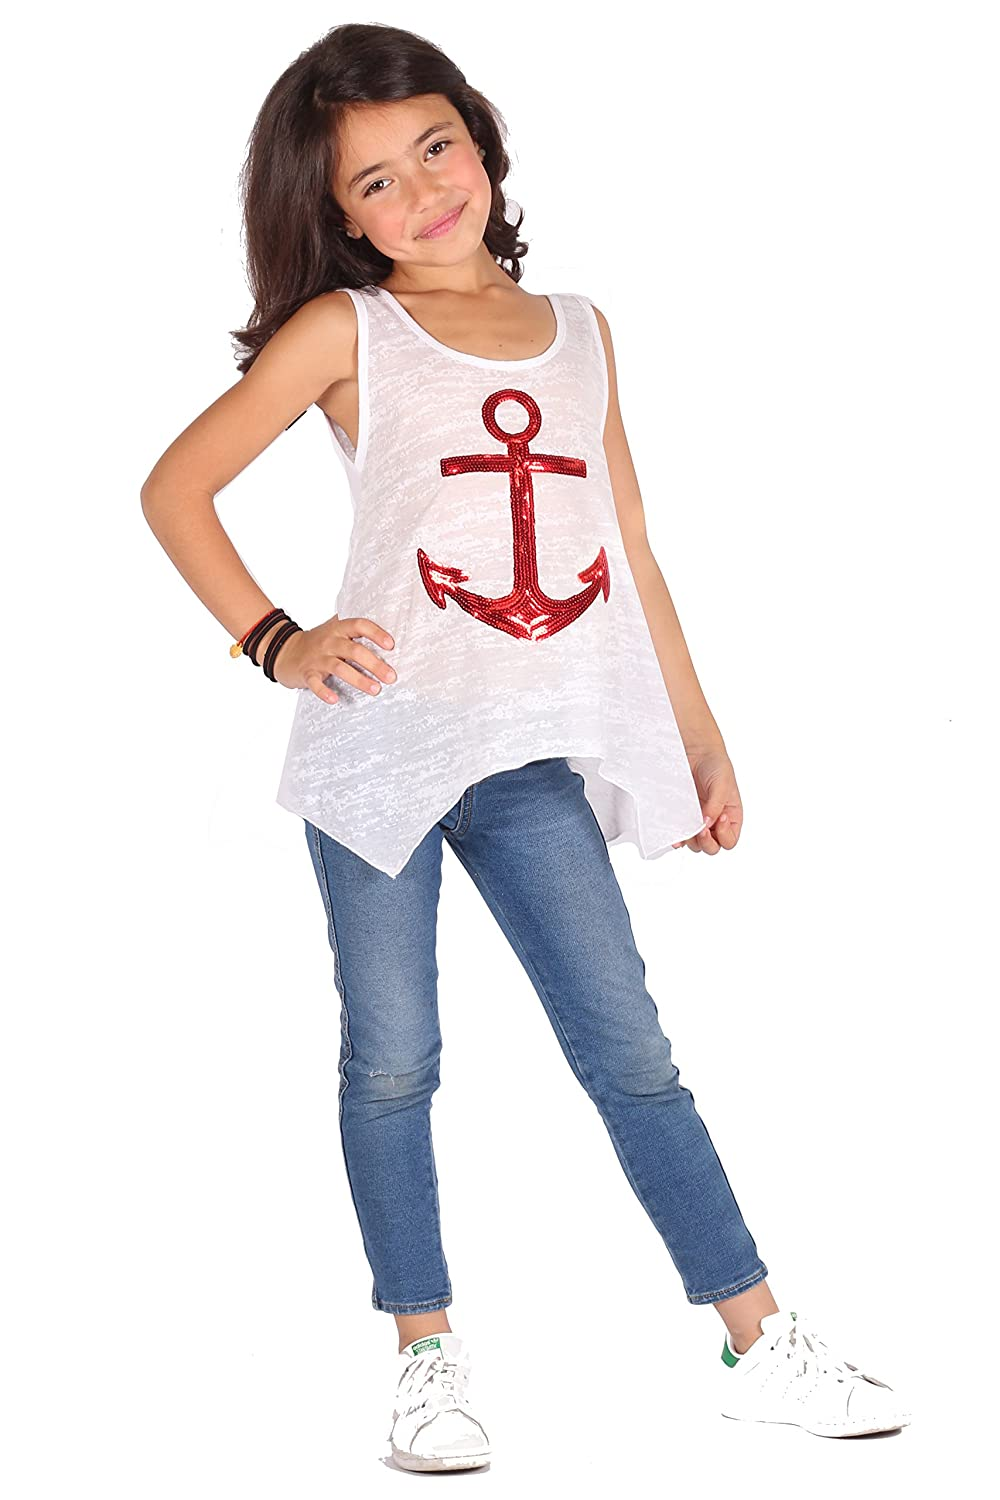 The Childrens Girls Graphic Tank Top LORI /& JANE Made in USA